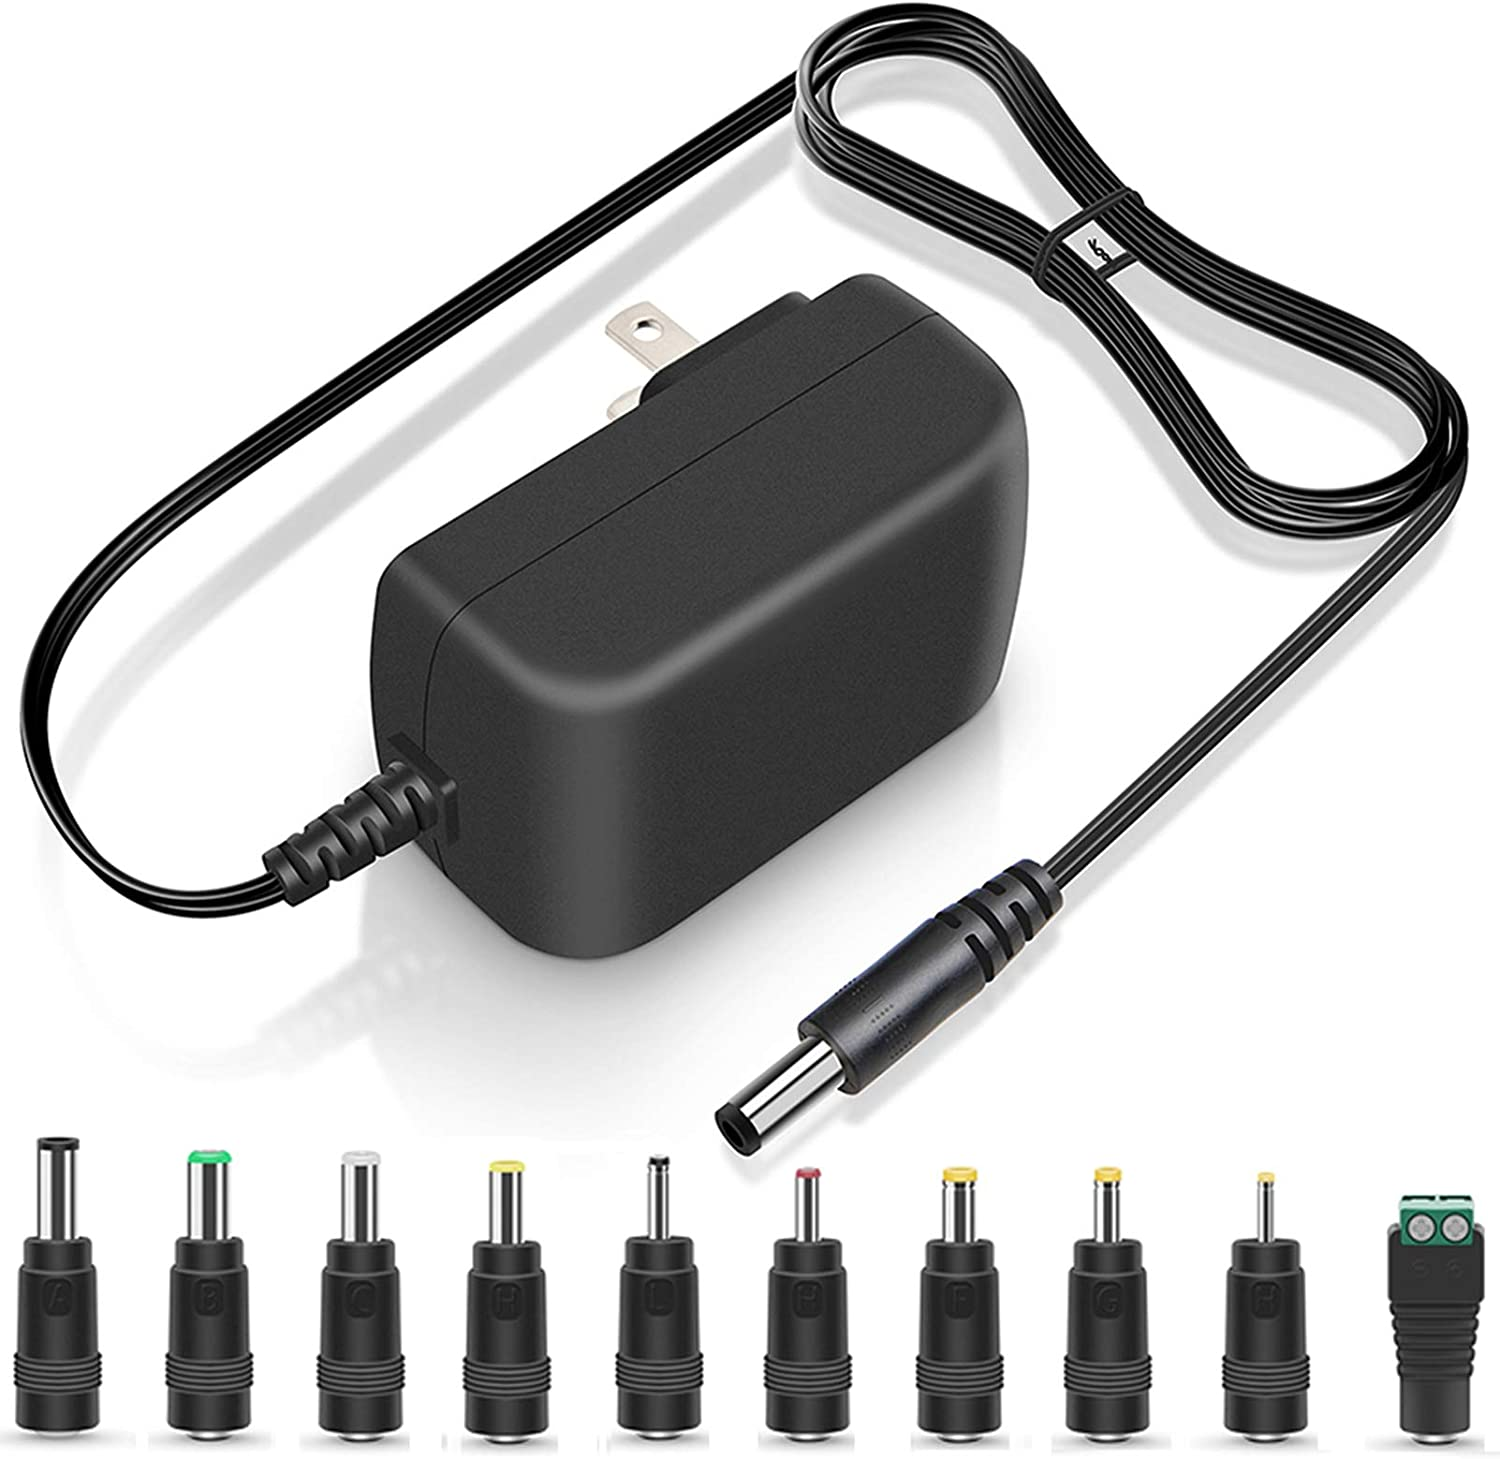 UL Listed 14V 2A 1.5A 1A AC Adapter 28W Switching DC Power Supply 10 Multi Jacks Universal Adaptor Regulated Charger for Recorder Speaker Monitor Scanner 6.5FT Power Cord Transformer Plug